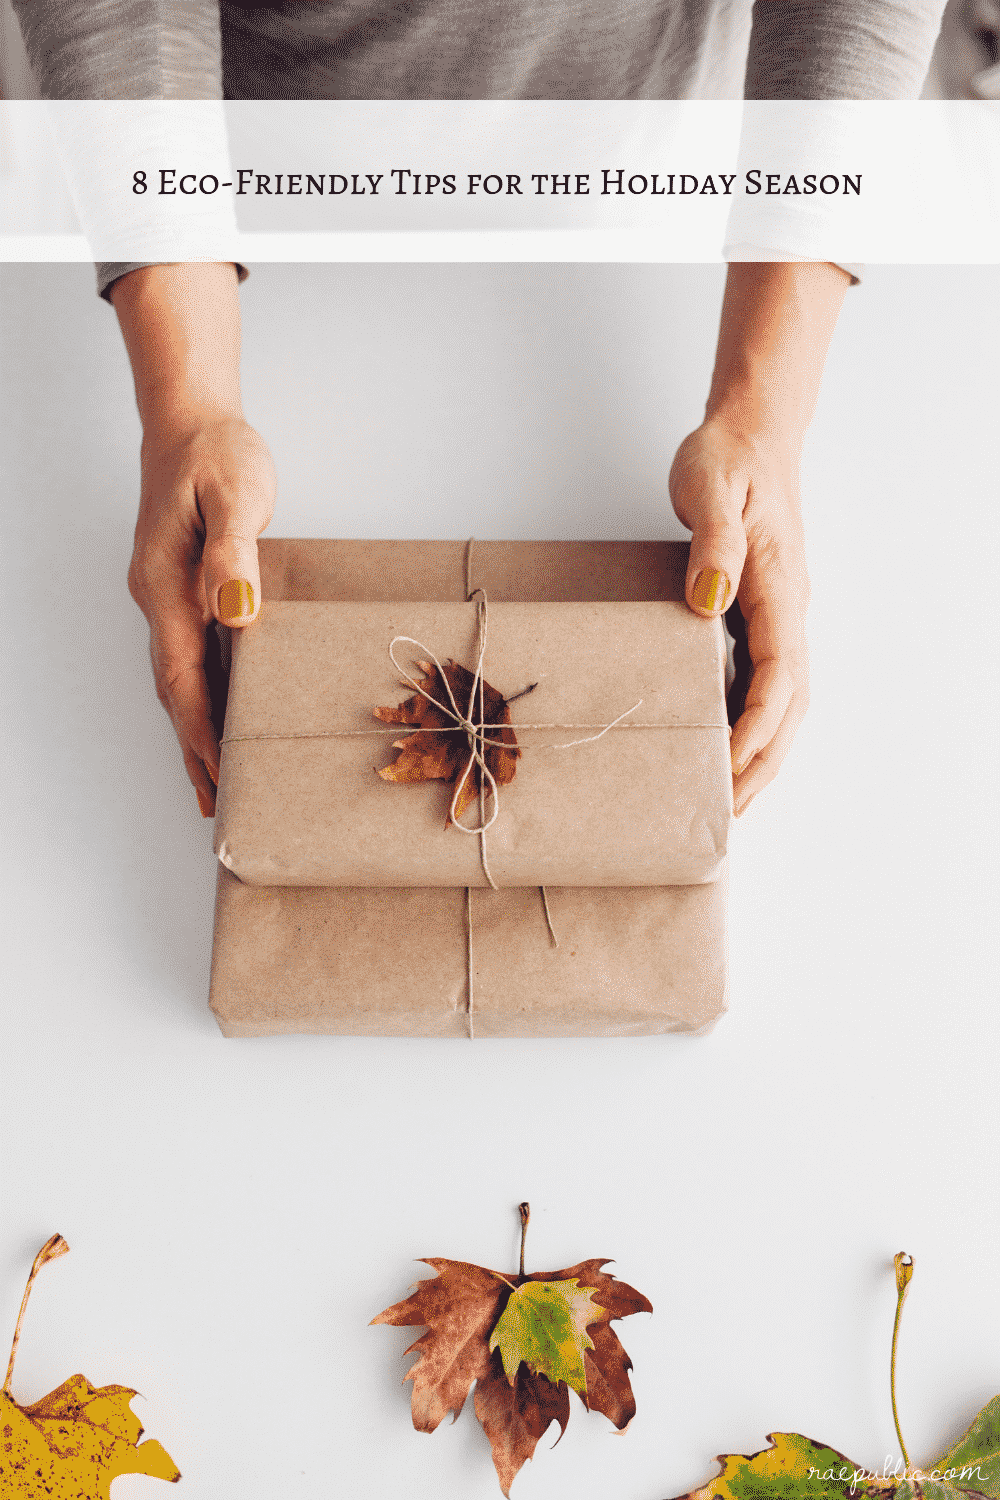 8 Eco-Friendly Tips for the Holiday Season